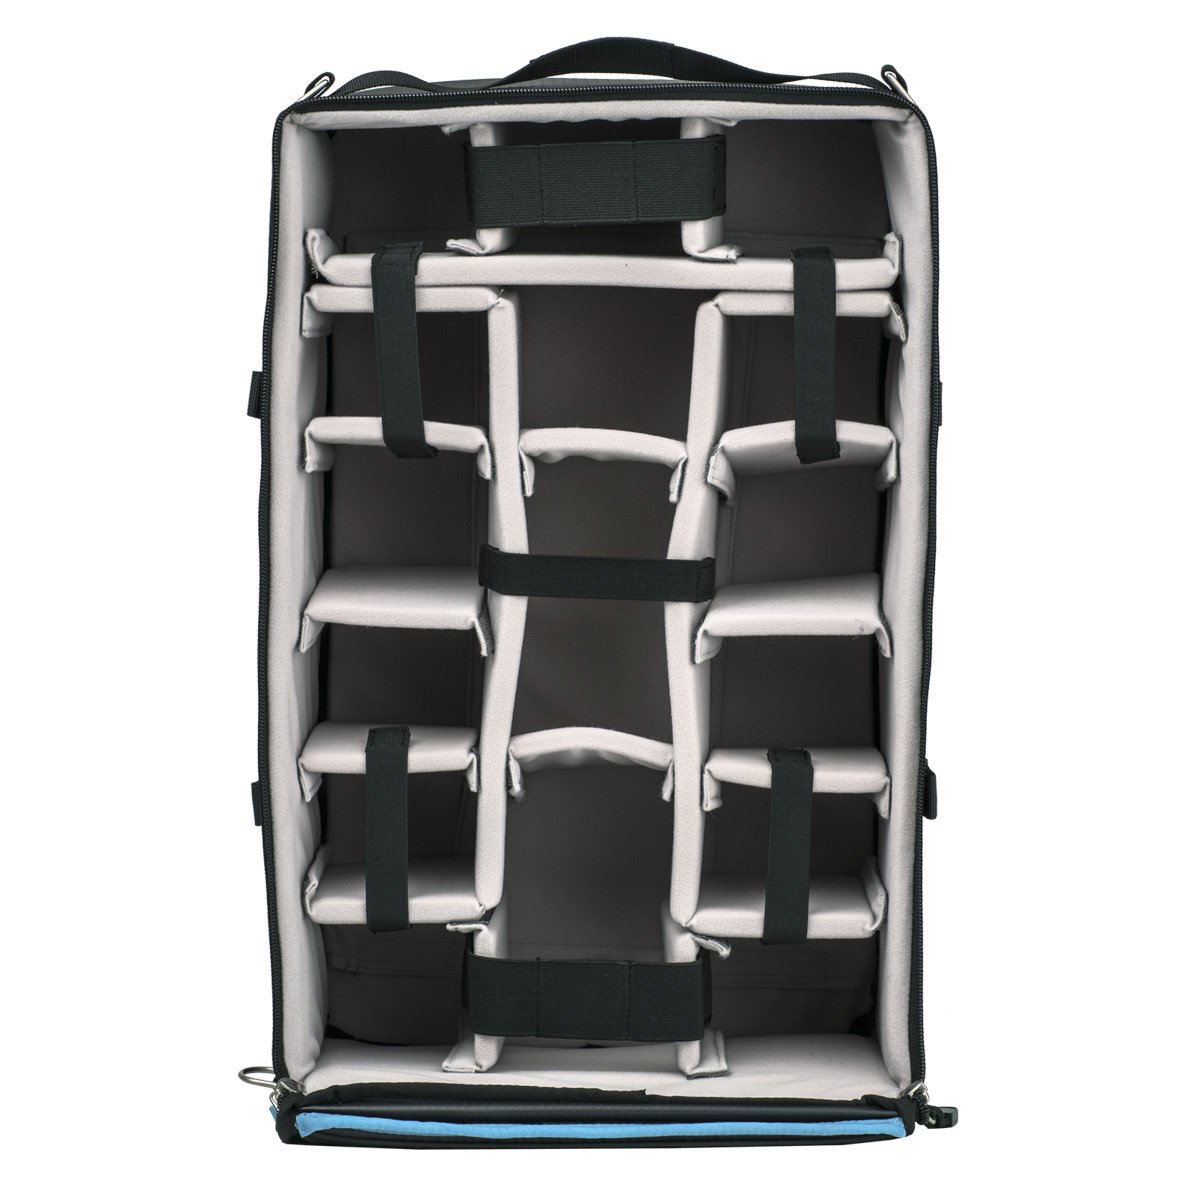 f-stop - Pro XL ICU (Internal Camera Unit - 7''D x 11.5''W x 19''H) Protection Storage Carry Solution for DSLR, Telephoto and Multiple Lens Kit